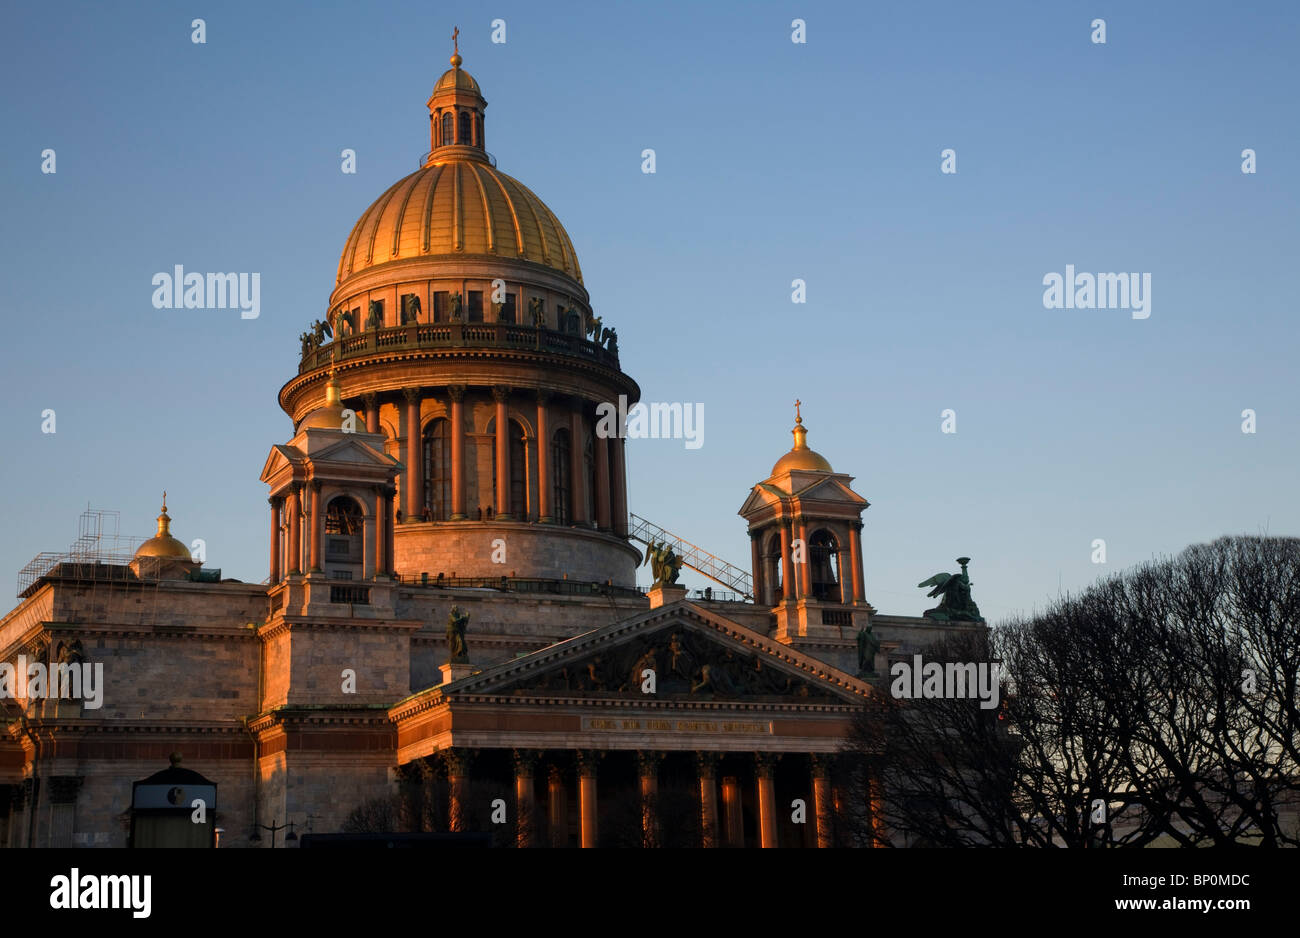 Russia, St.Petersburg; The majestic St.Isaac's Cathedral in the evening light - Stock Image